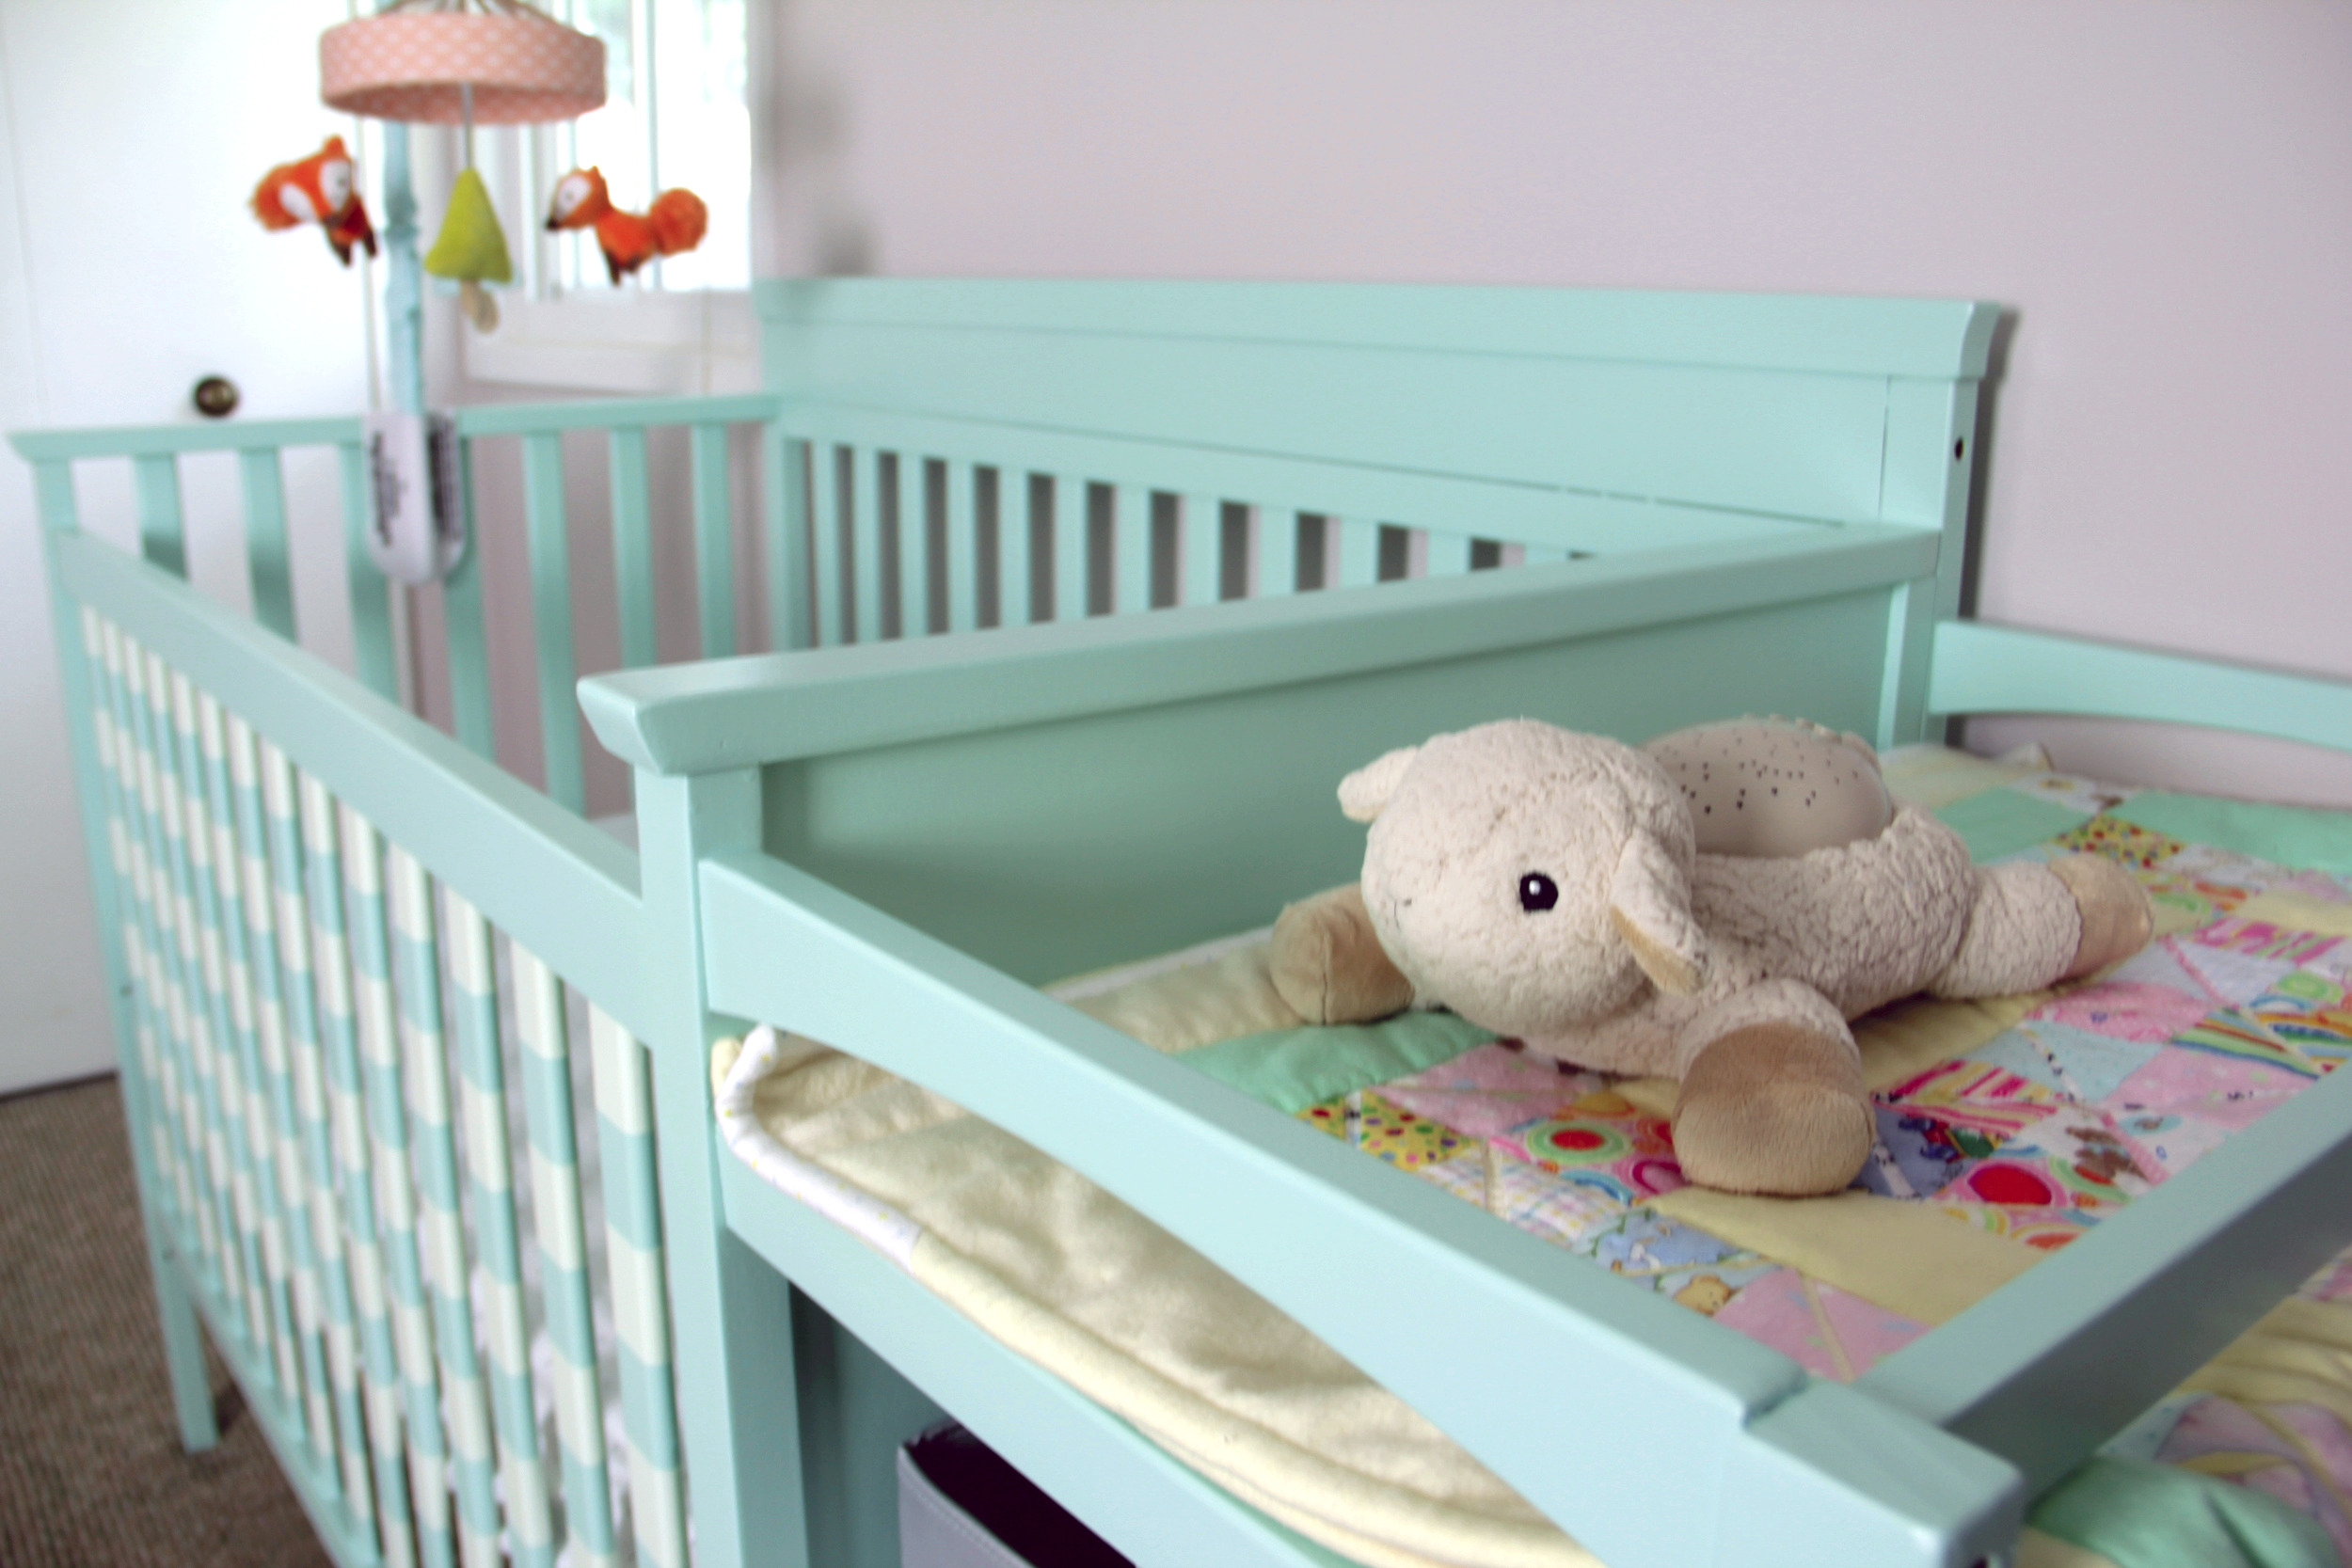 We love this sheepie! It makes stars on the ceiling.